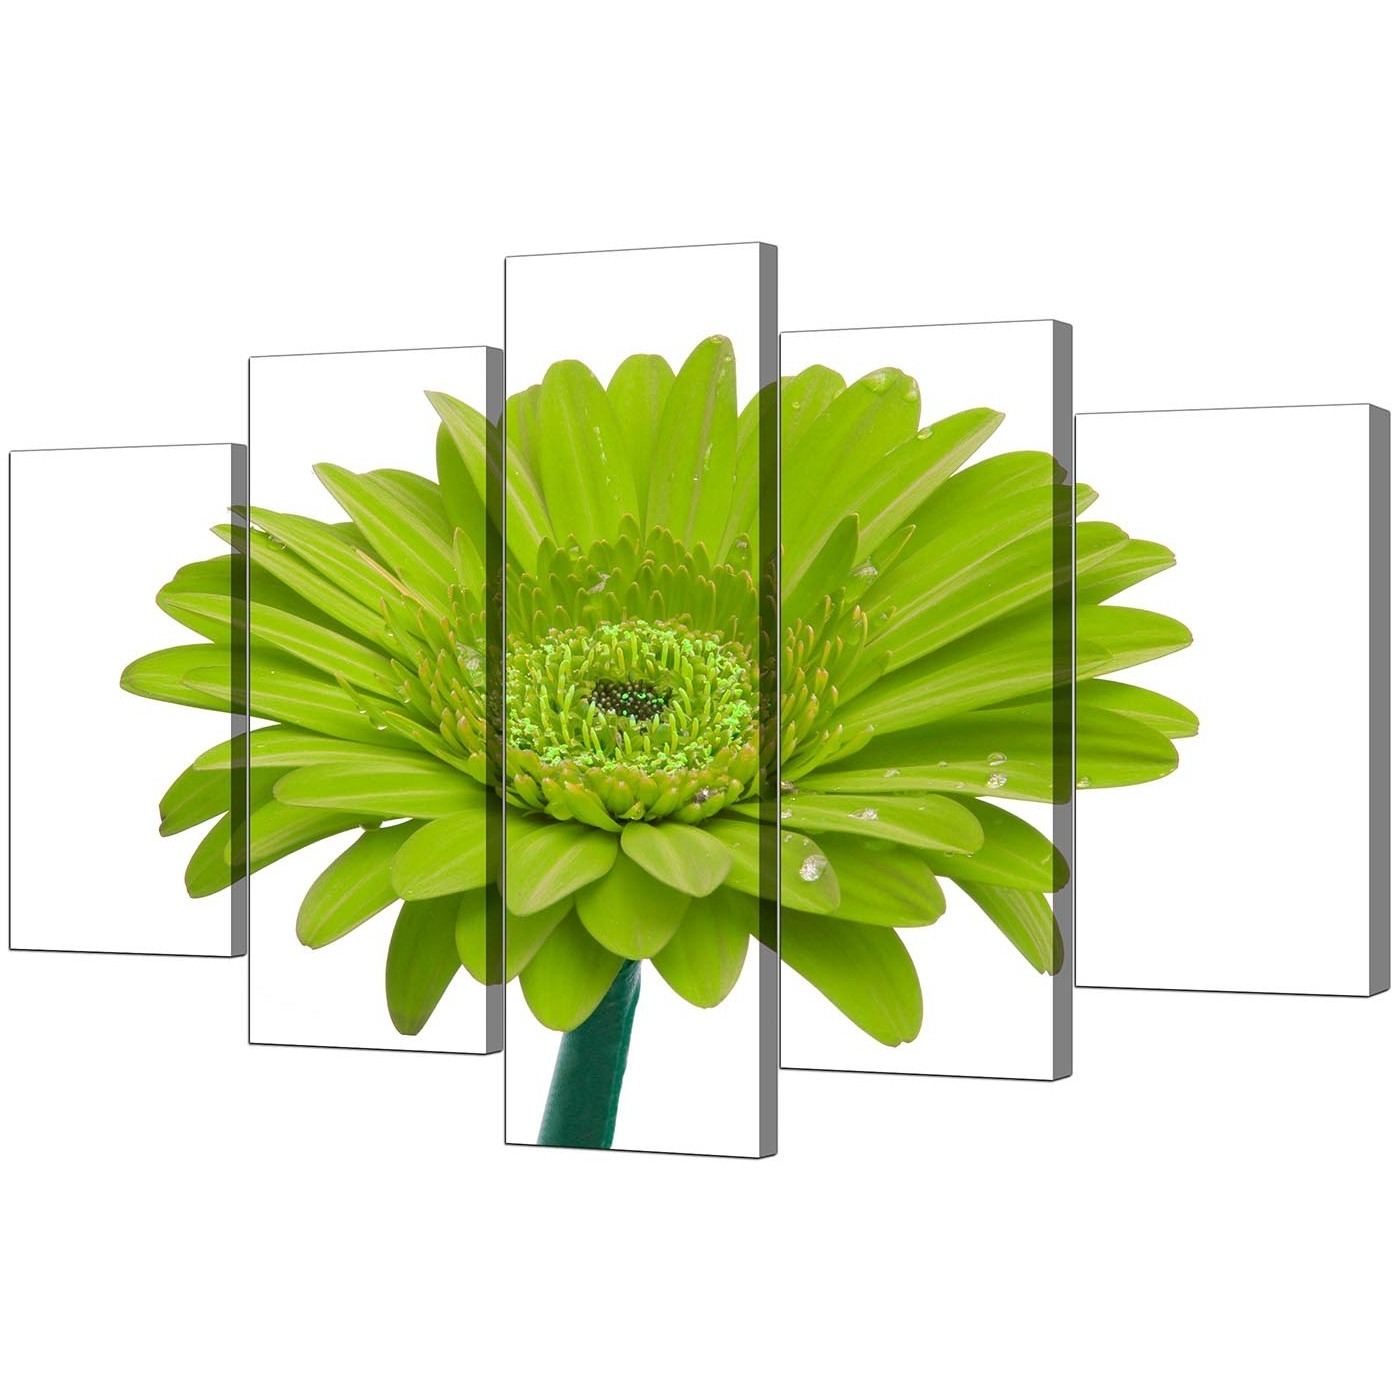 2017 Extra Large Flower Canvas Wall Art Five Part In Lime Green With Green Canvas Wall Art (View 1 of 15)